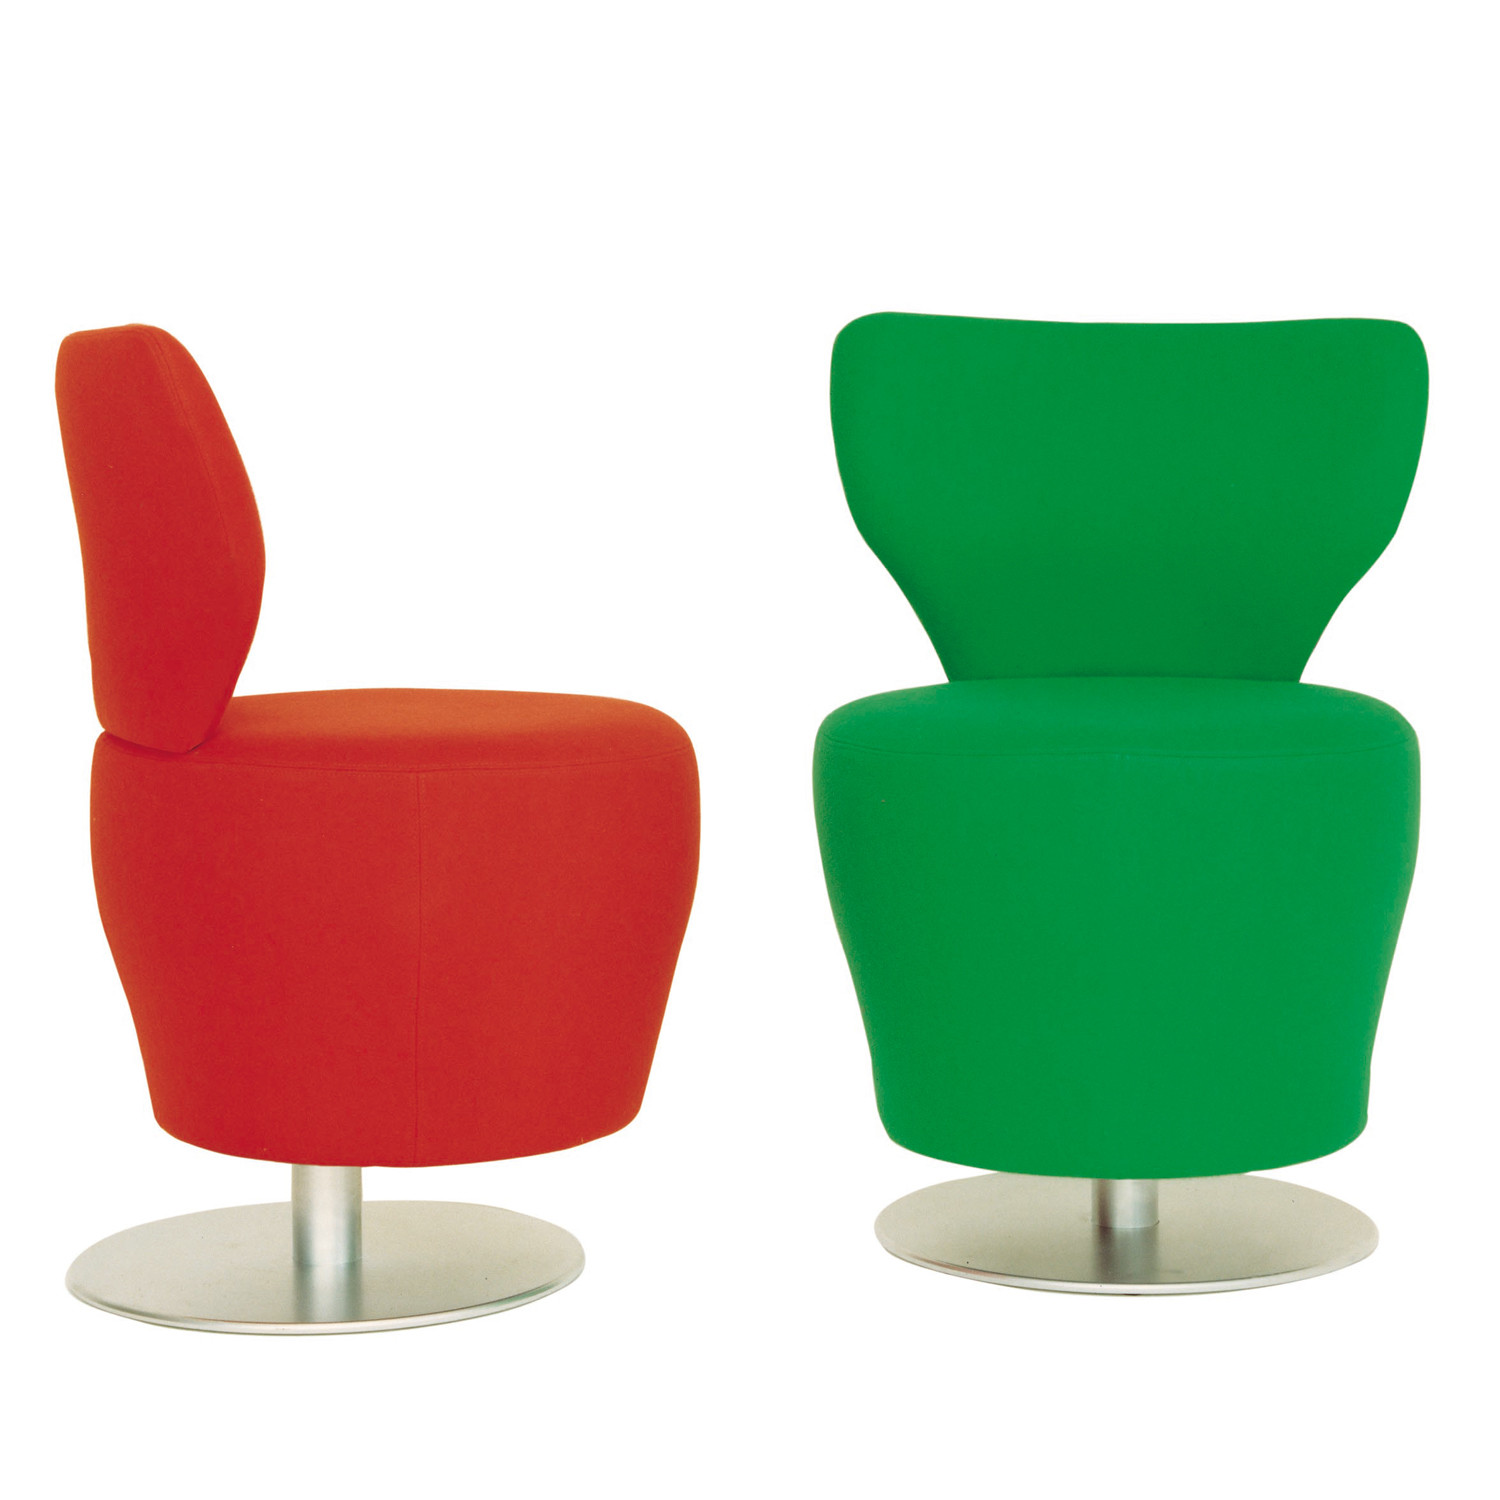 Dean Orangebox Chairs